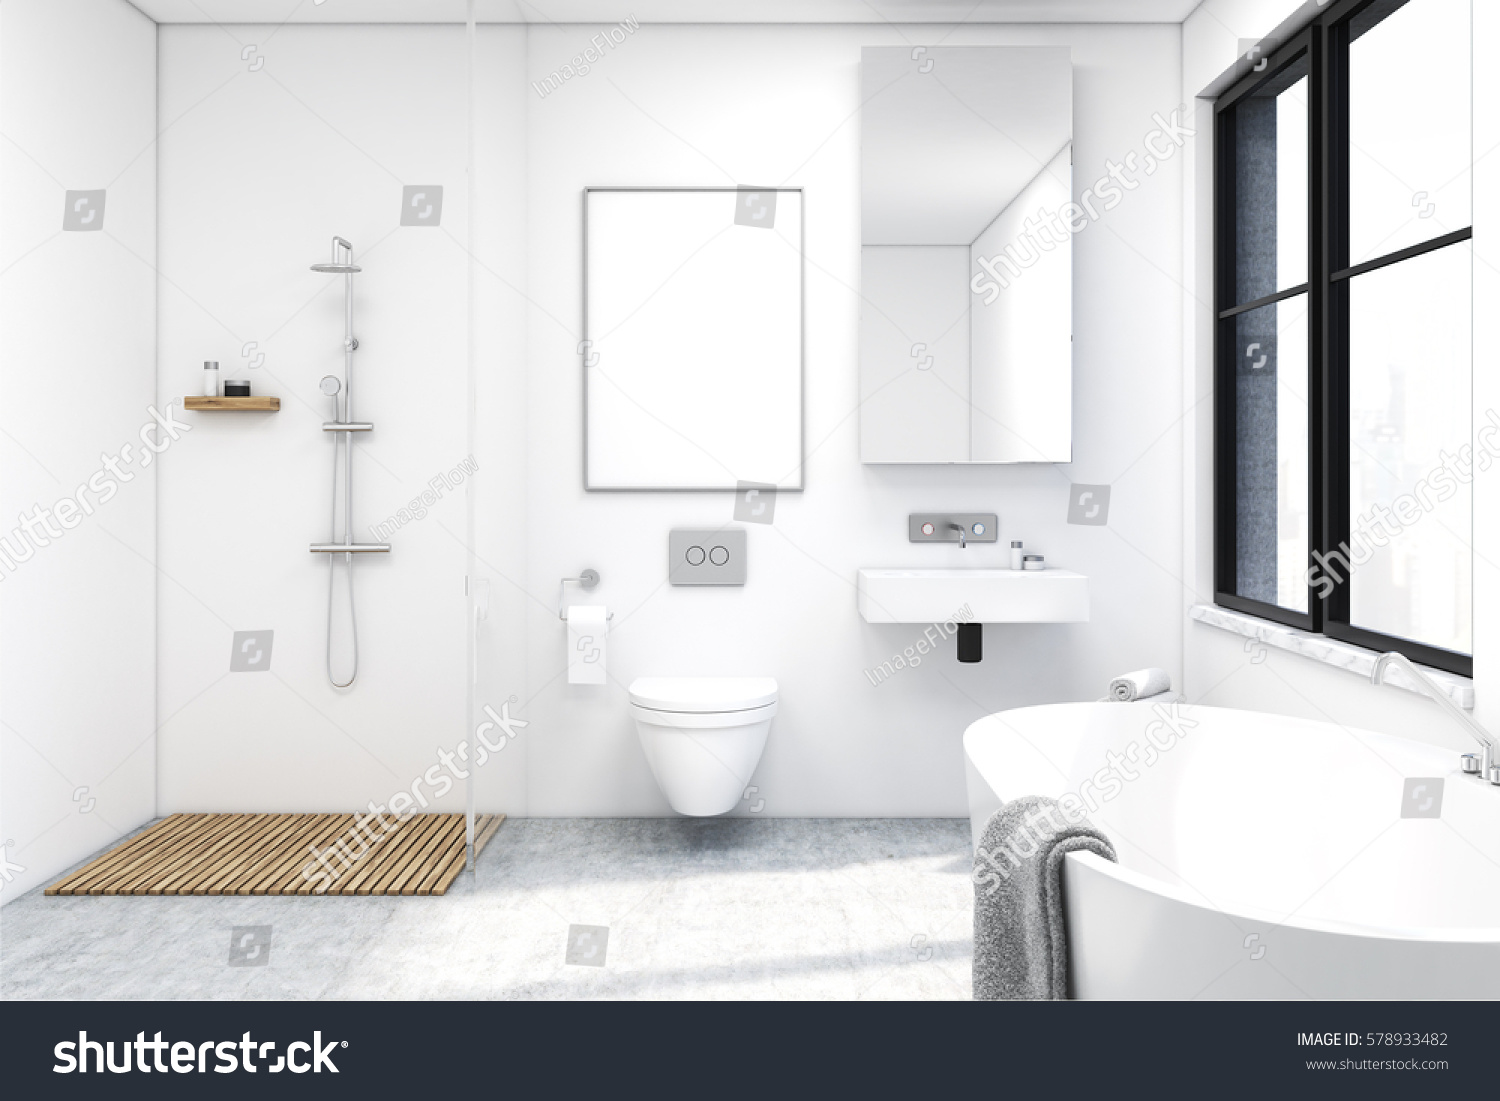 A picture of a bathroom - Front View Of A Bathroom Interior With A Shower A Toilet And A Sink